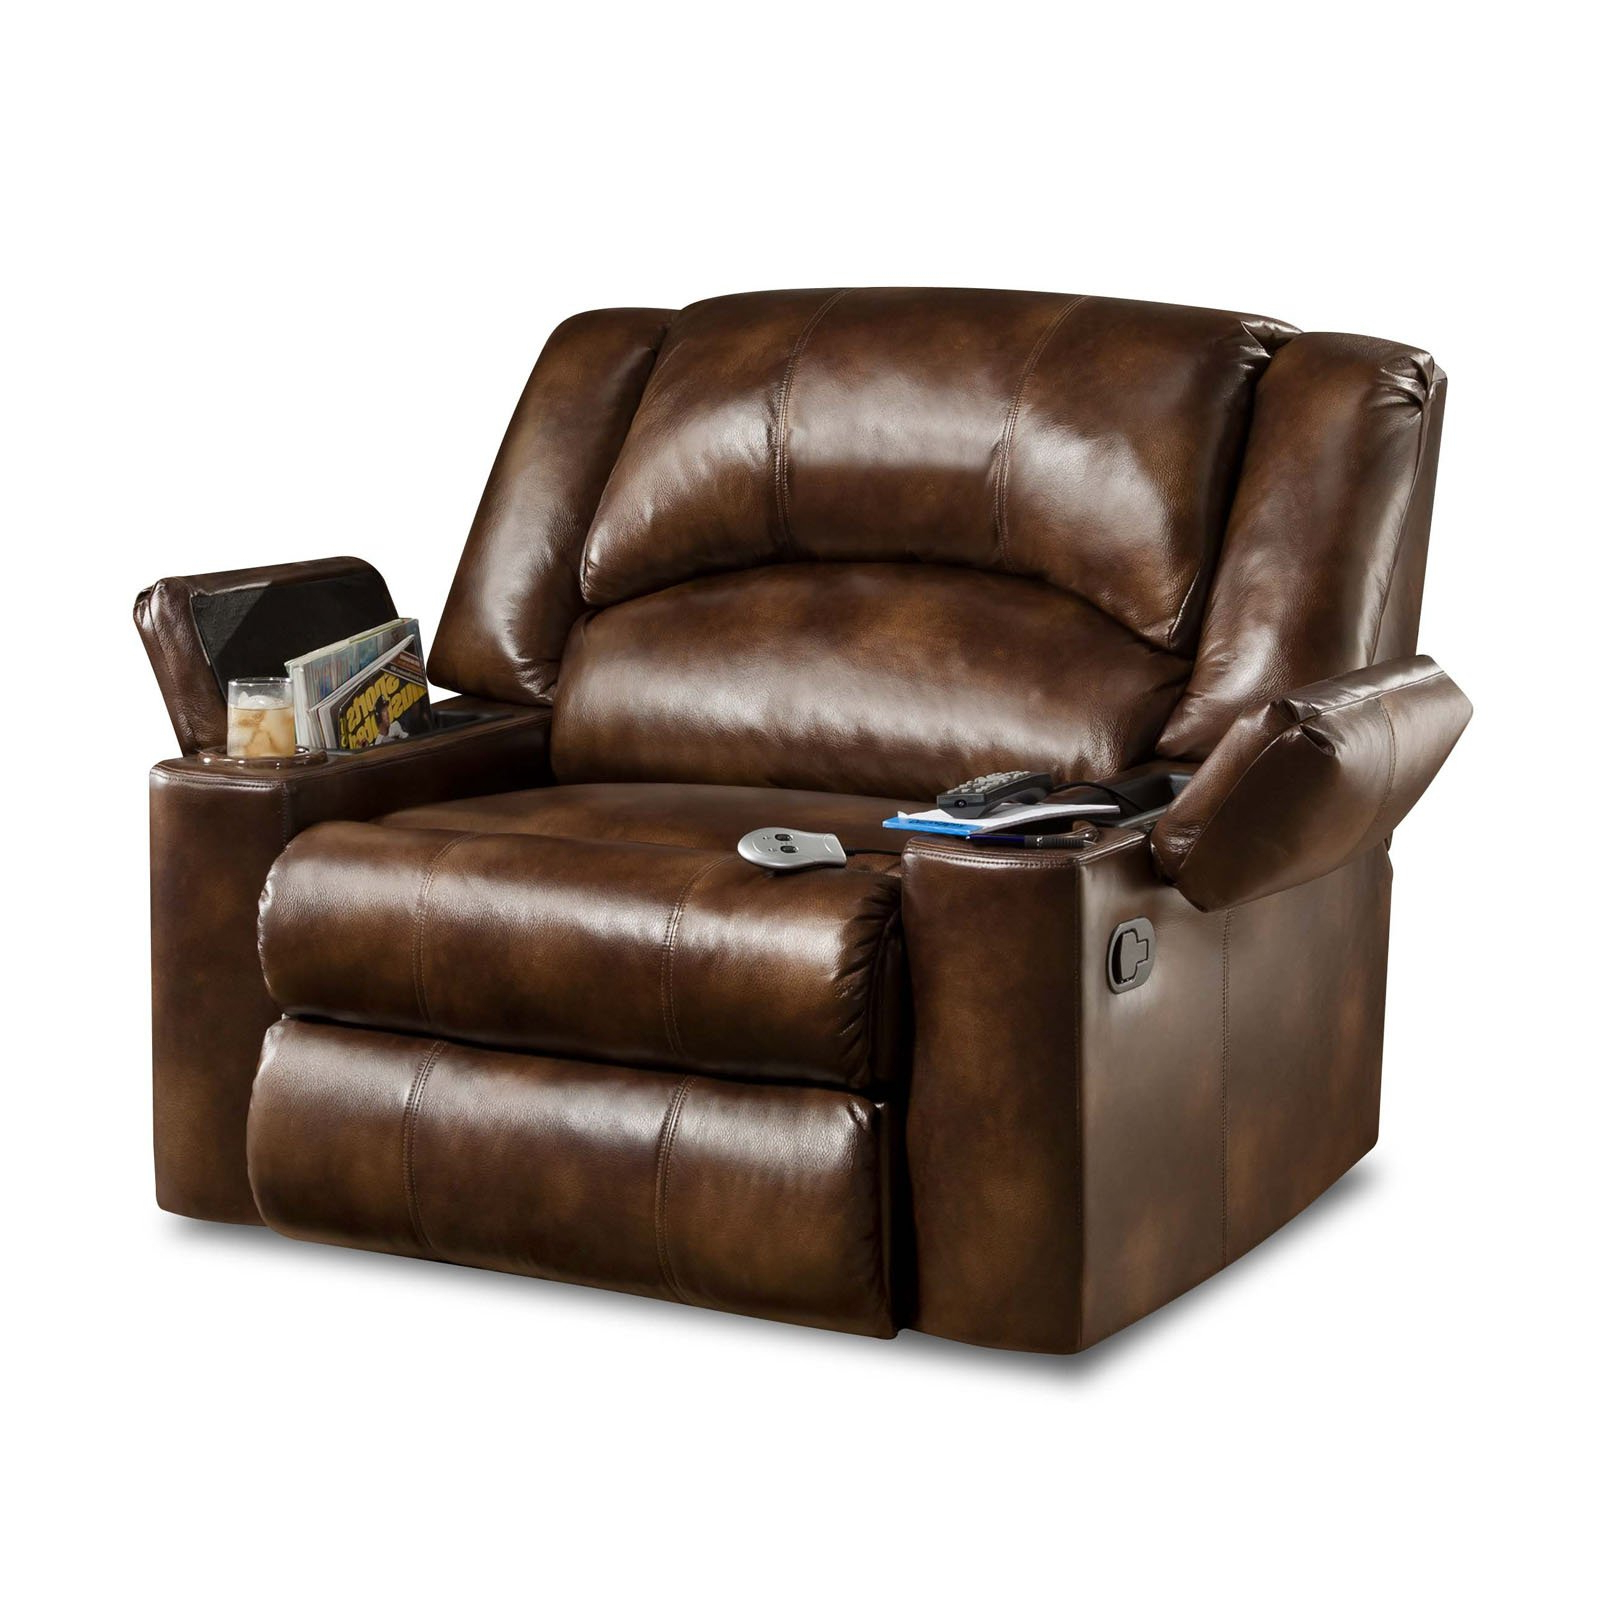 Rogan Leather Cafe Latte Swivel Glider Recliners Throughout Trendy Furniture: Surprising Simmons Recliners For Contemporary Living Room (View 17 of 20)